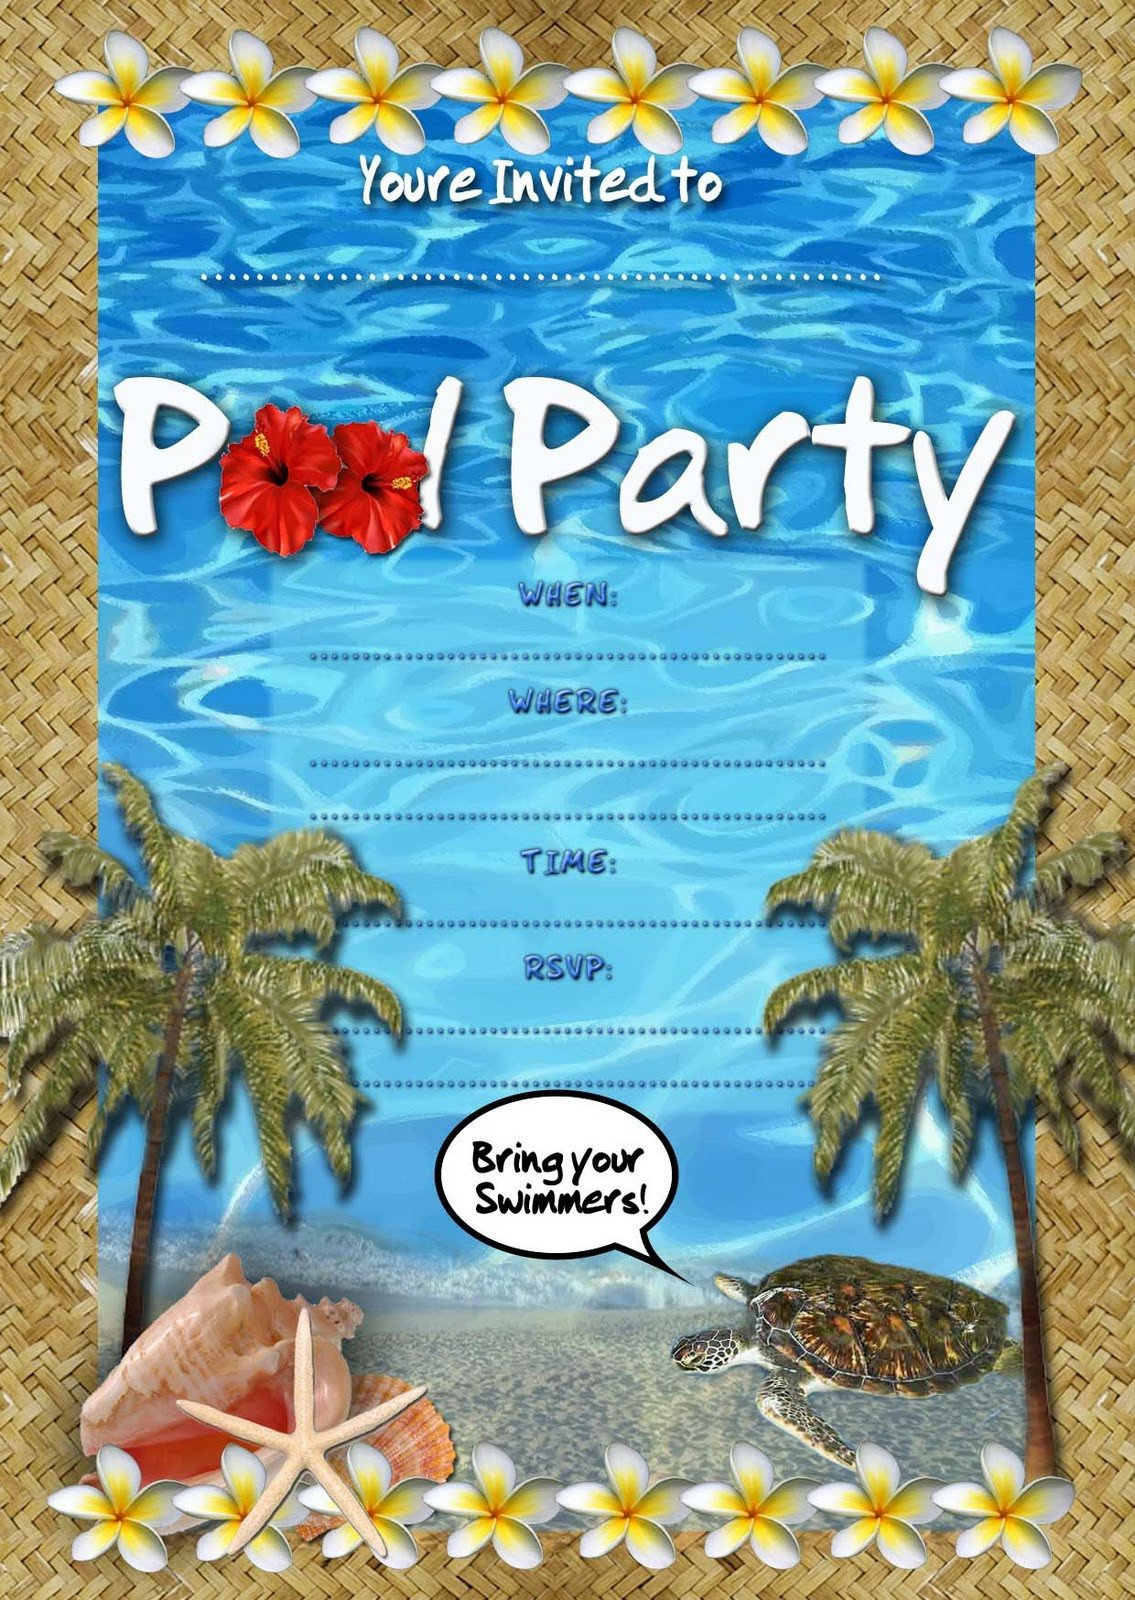 Printable Pool Party Invitations Free Kids Party Invitations Pool Party Invitation